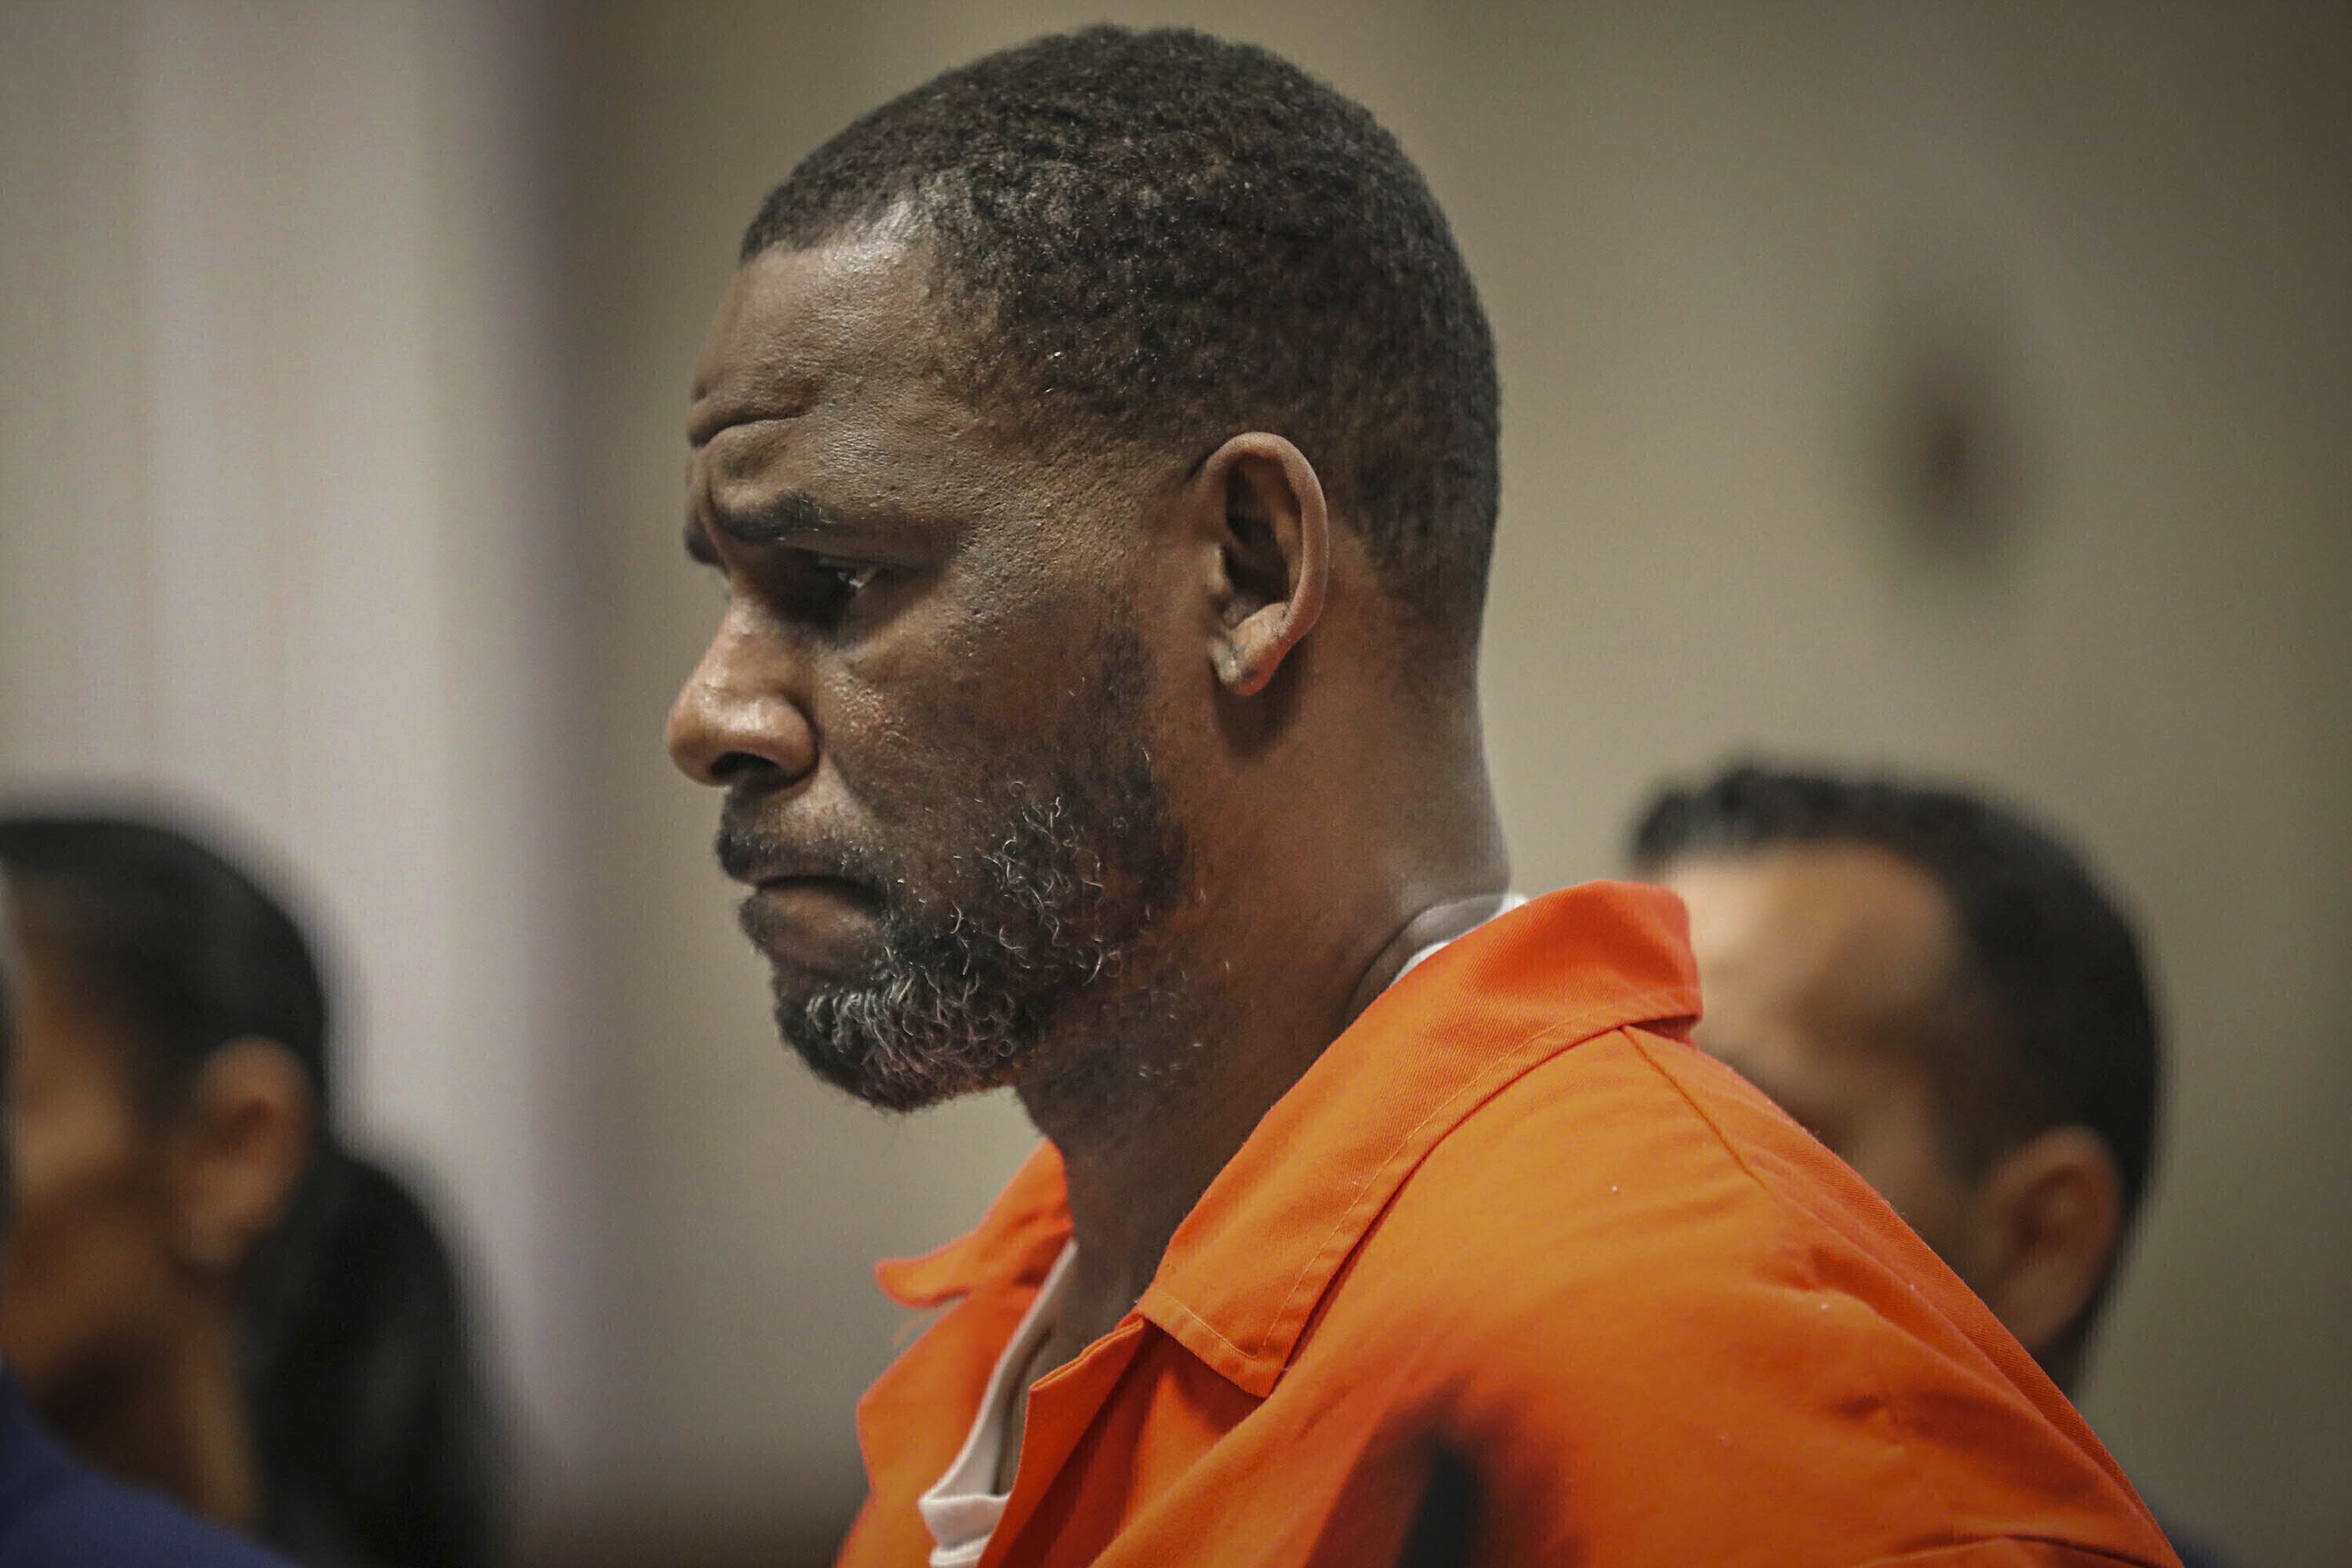 """In this Sept. 17, 2019, file photo, R. Kelly appears during a hearing at the Leighton Criminal Courthouse in Chicago. The R&B superstar known for his anthem """"I Believe I Can Fly,"""" was convicted Monday in a sex trafficking trial after decades of avoiding criminal responsibility for numerous allegations of misconduct with young women and children."""